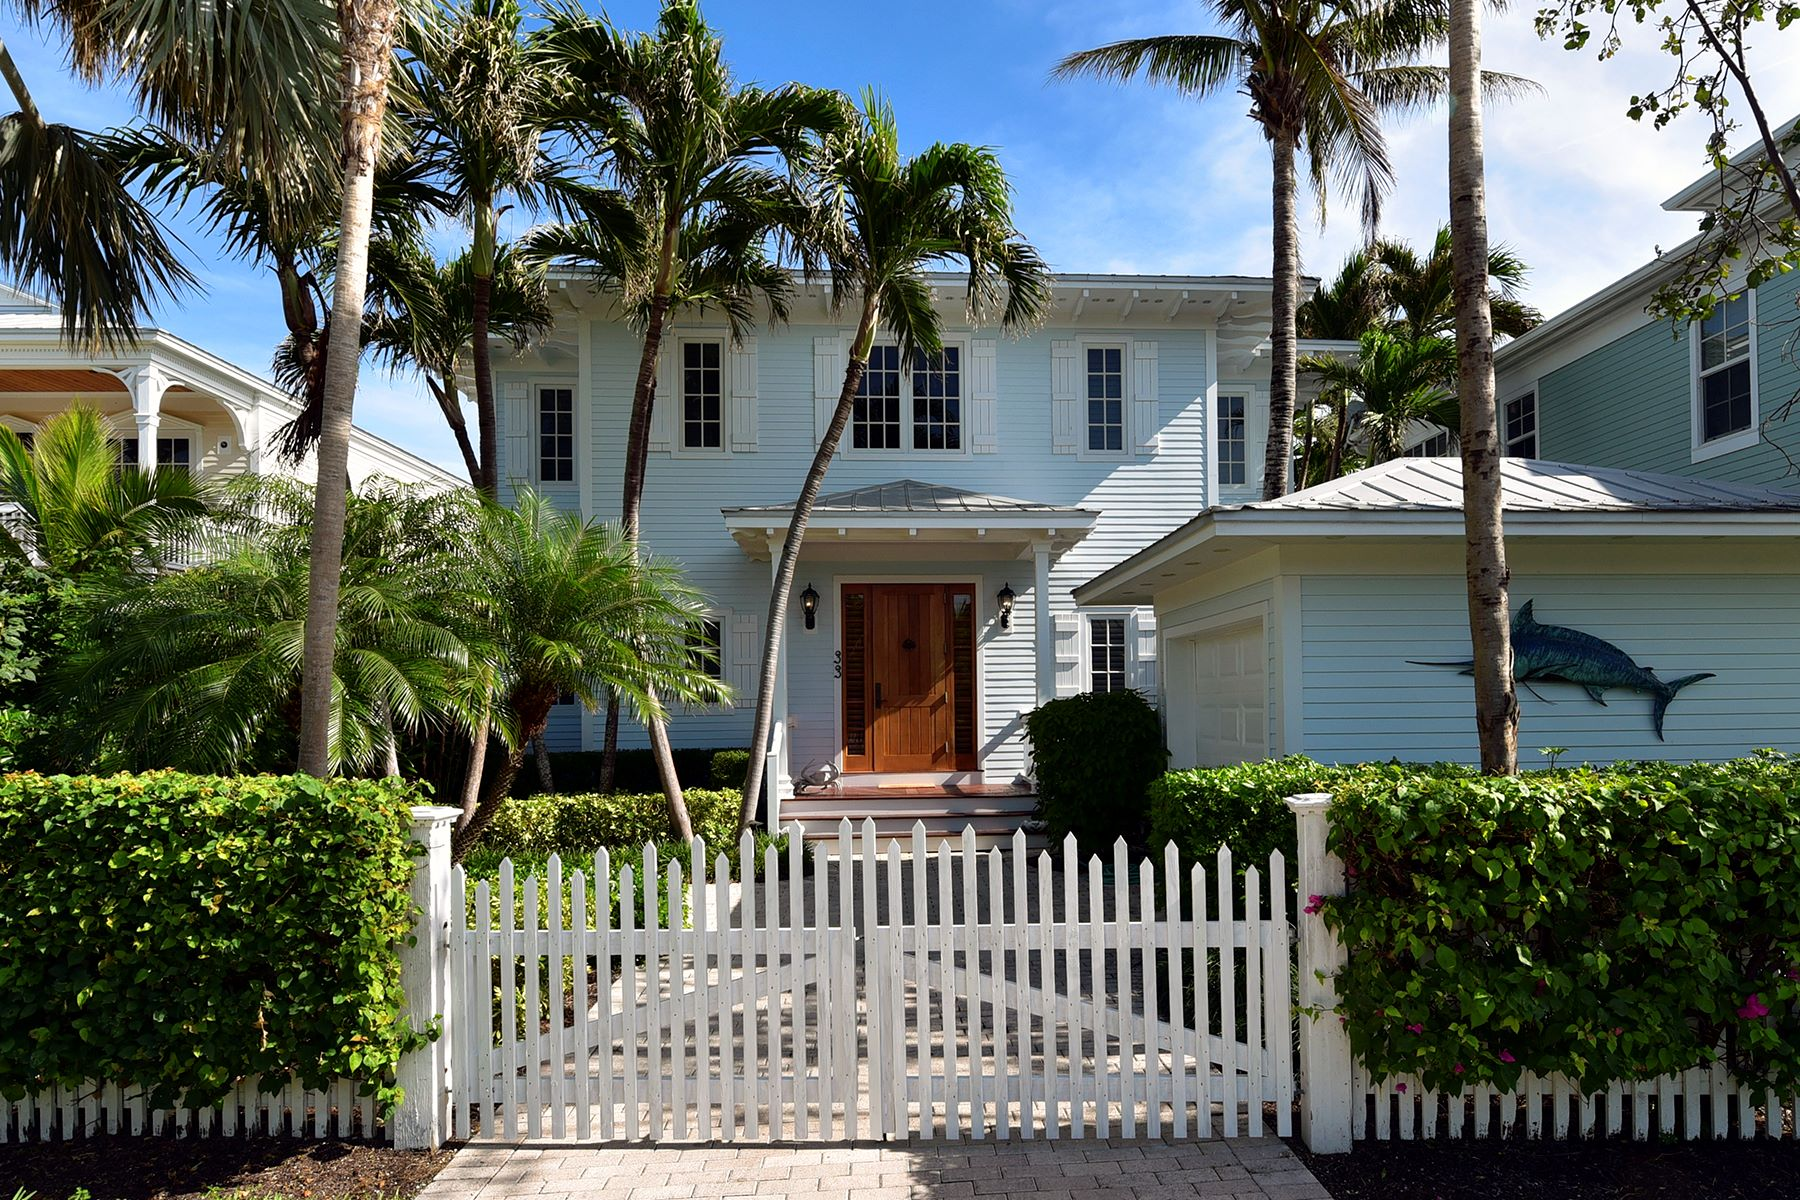 Single Family Home for Sale at Waterfront Home on Oversized Lot 33 Sunset Key Drive Key West, Florida 33040 United States